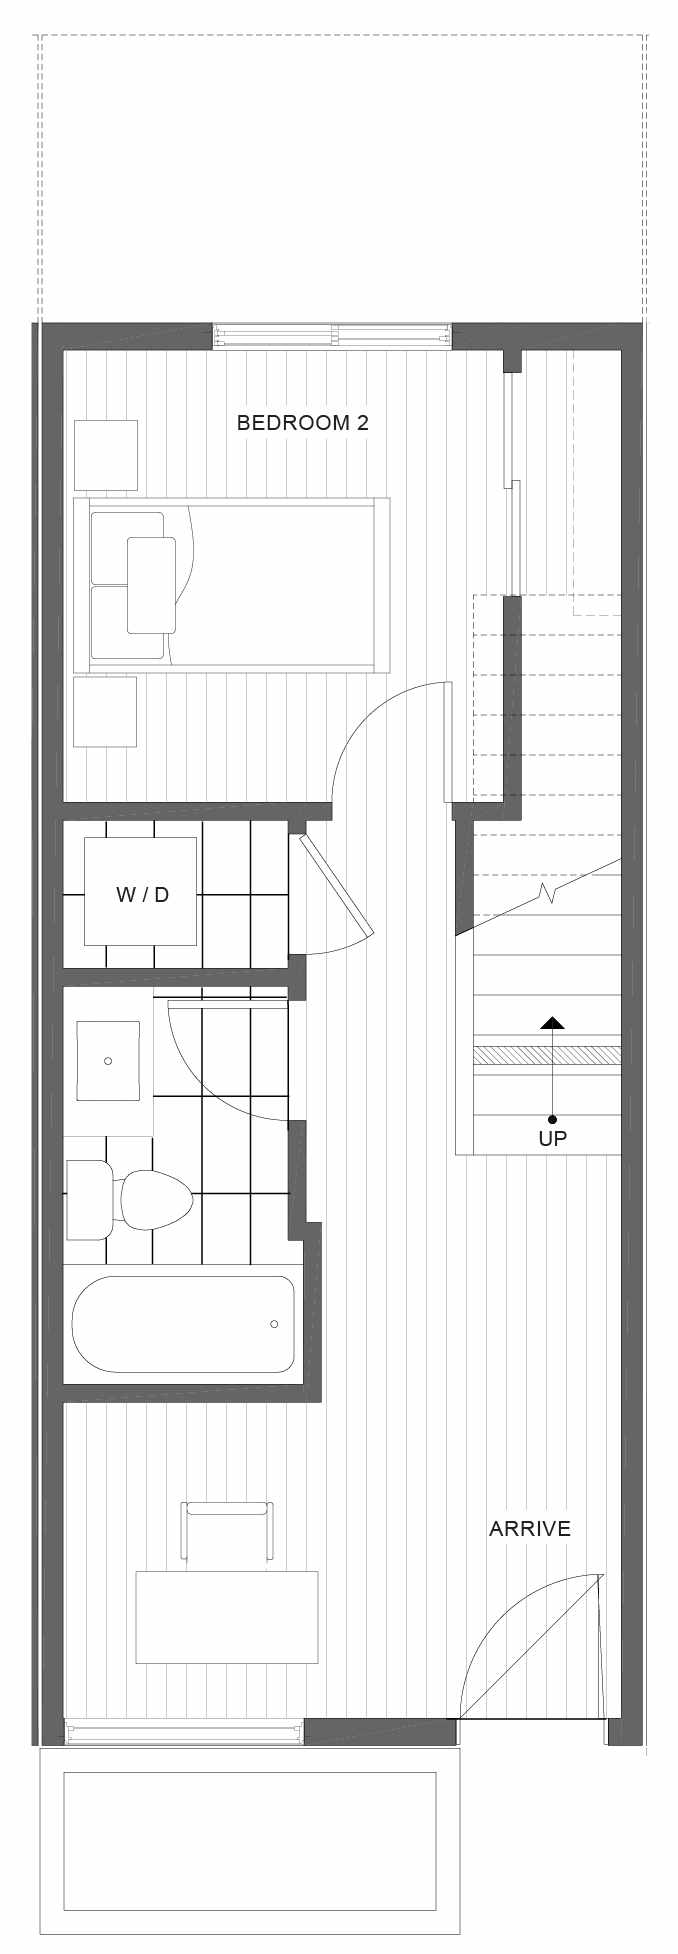 First Floor Plan of 1326 E Spring St of the Corazon II Townhomes